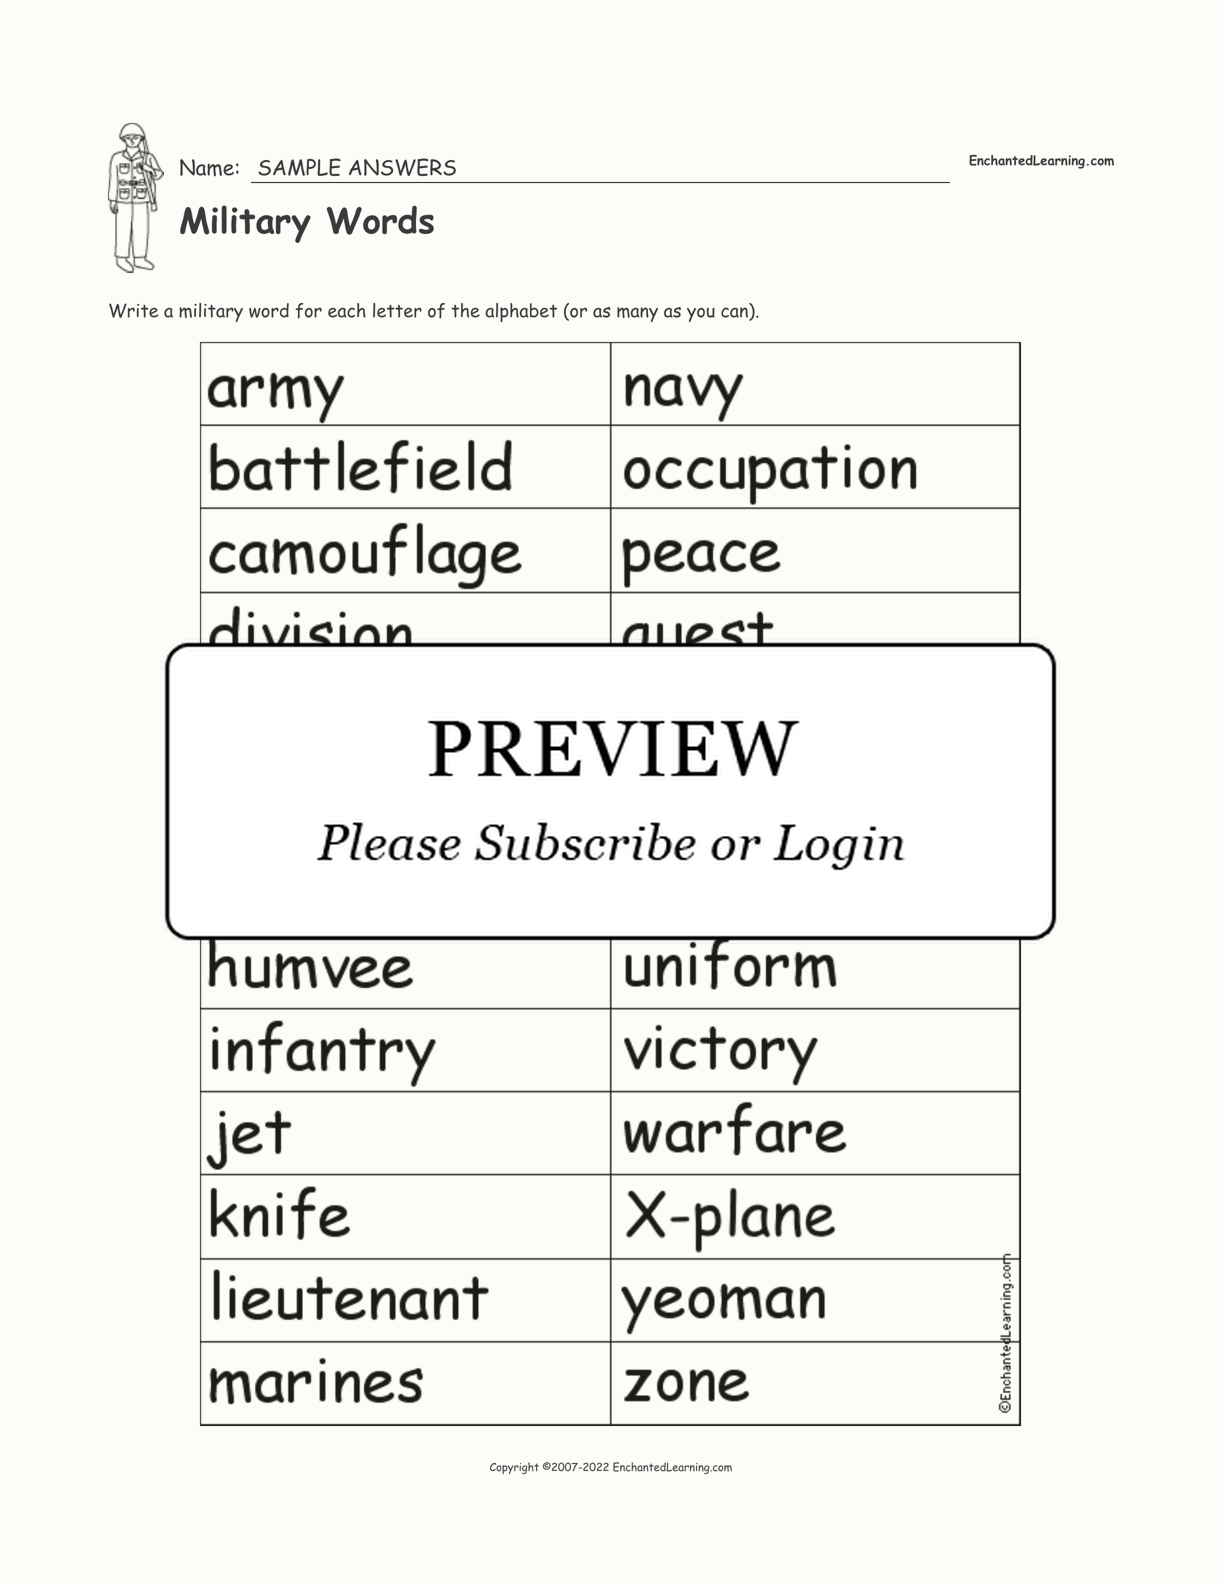 A Military Word For Each Letter